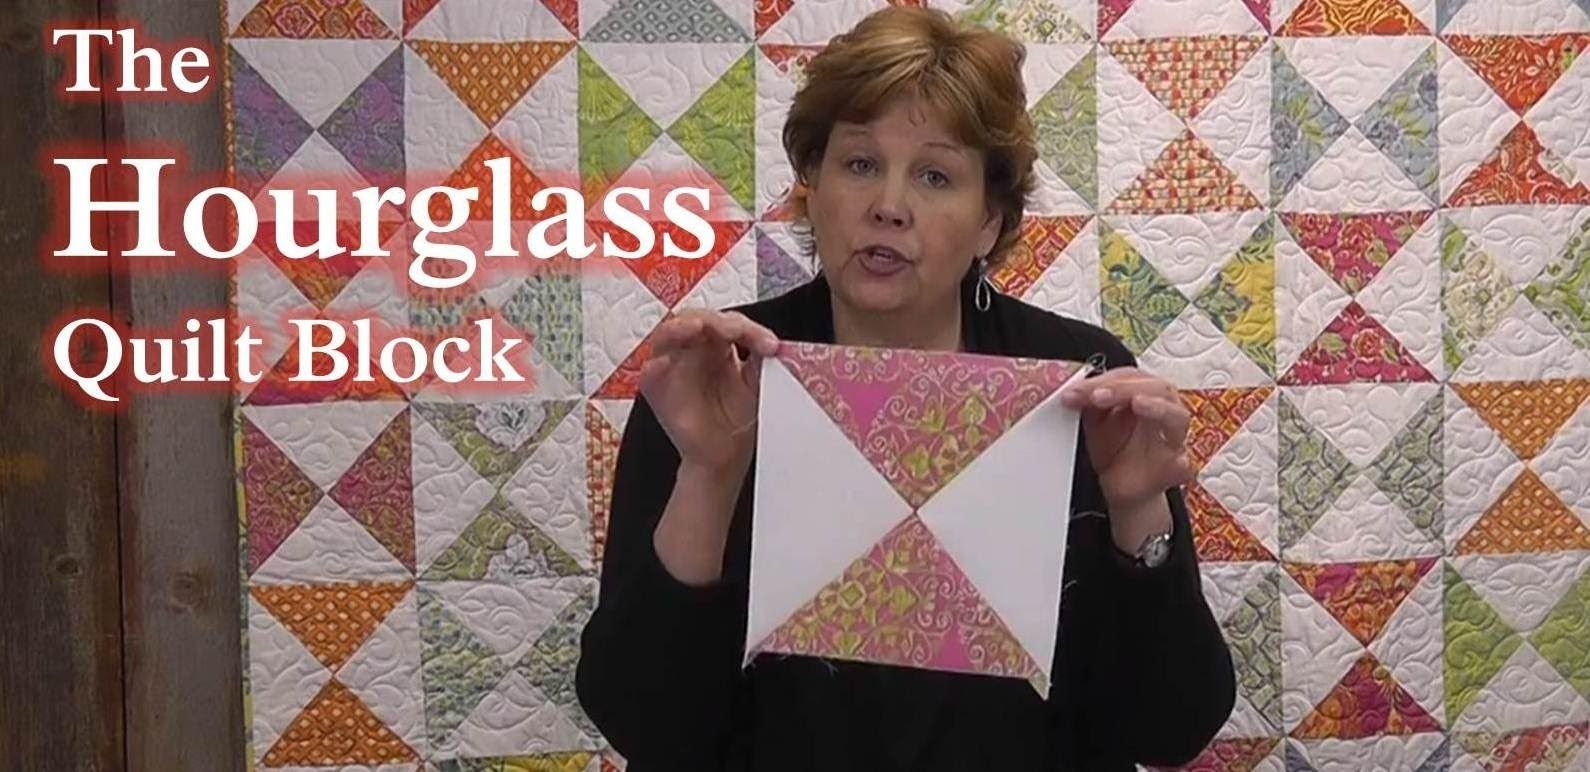 The hourglass quilt block learn to quilt youtube quilt tips the hourglass quilt block learn to quilt youtube missouri star quilt tutorialsquilting baditri Choice Image